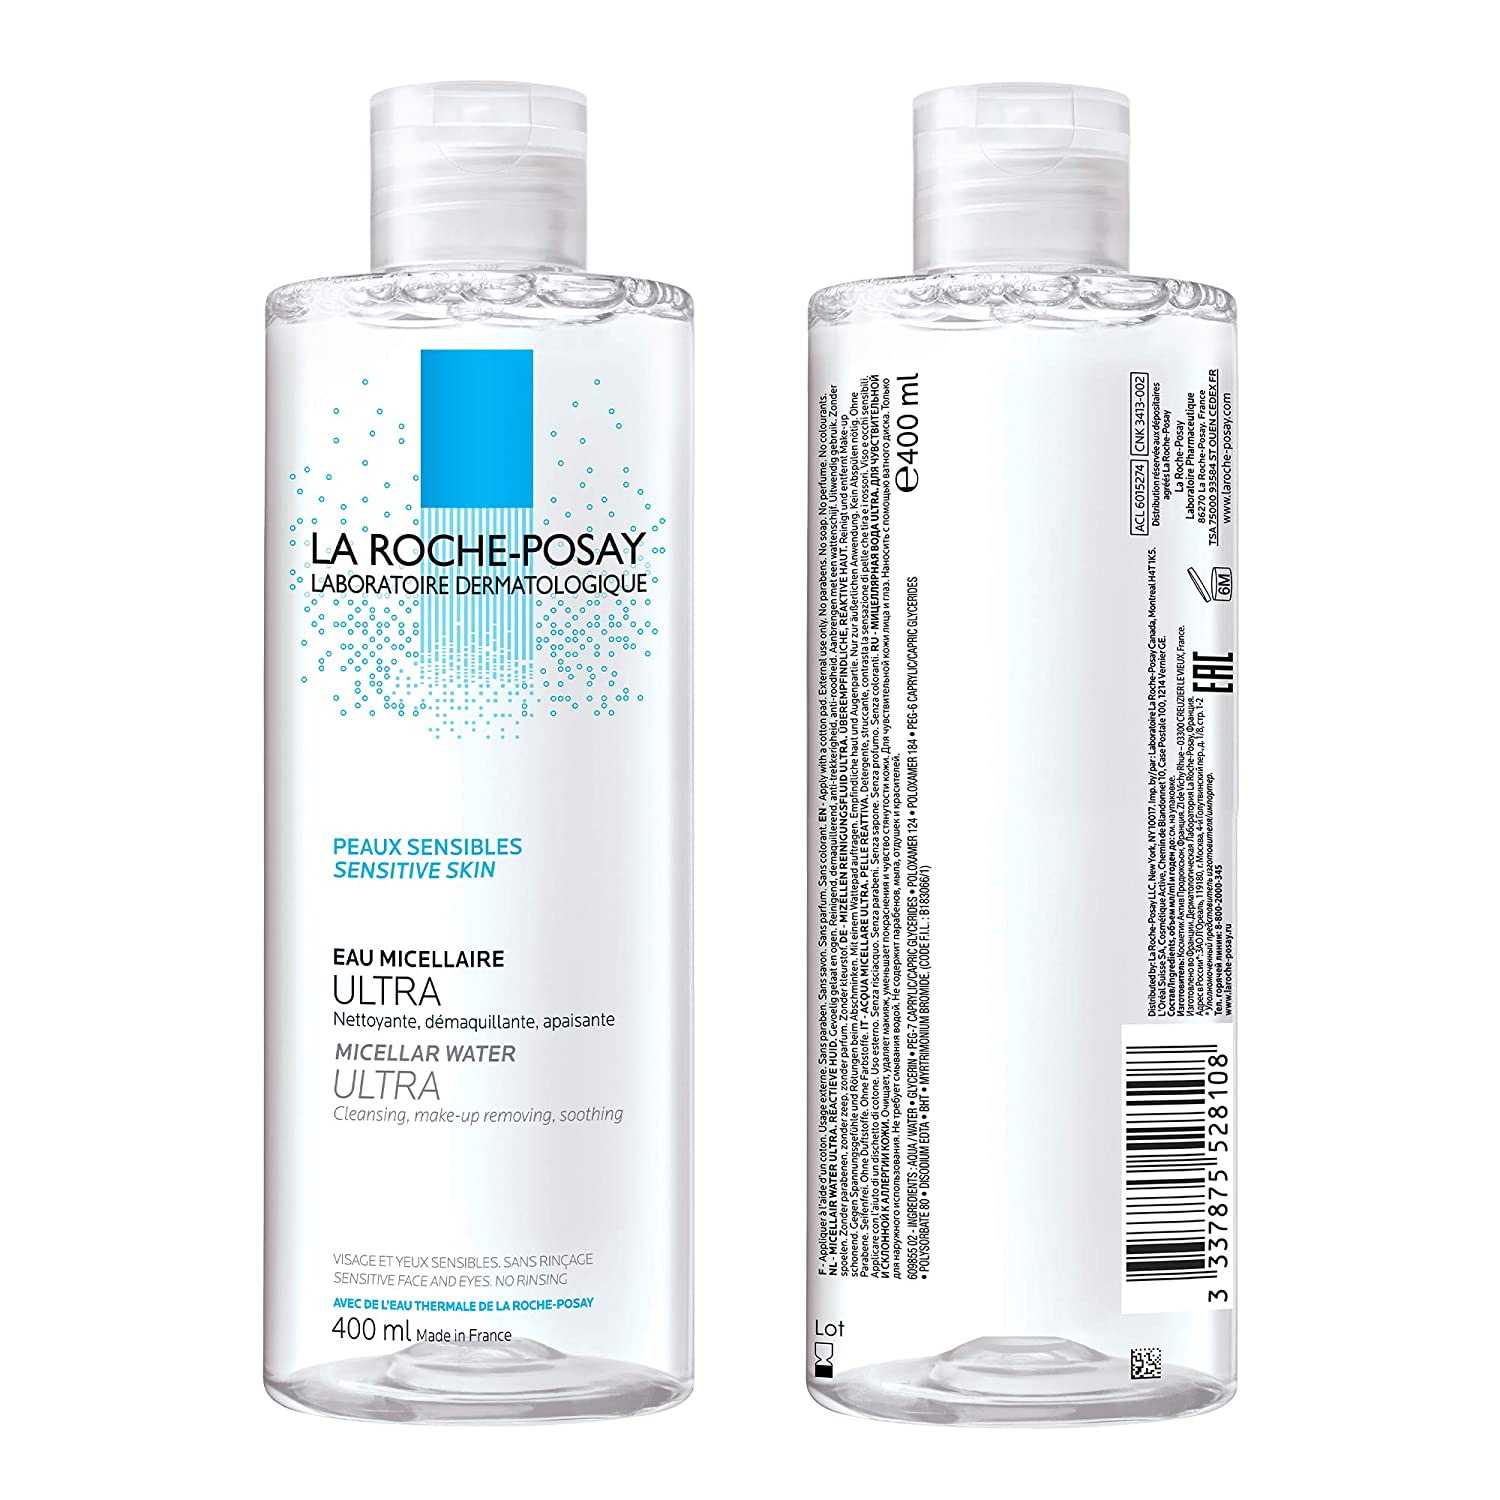 La Roche-Posay Micellar Cleansing Water, Physiologique Micellar Water for Ultra  Sensitive Skin with Glycerin, Alcohol-Free & Hypoallergenic, 400ml:  Amazon.ca: Luxury Beauty